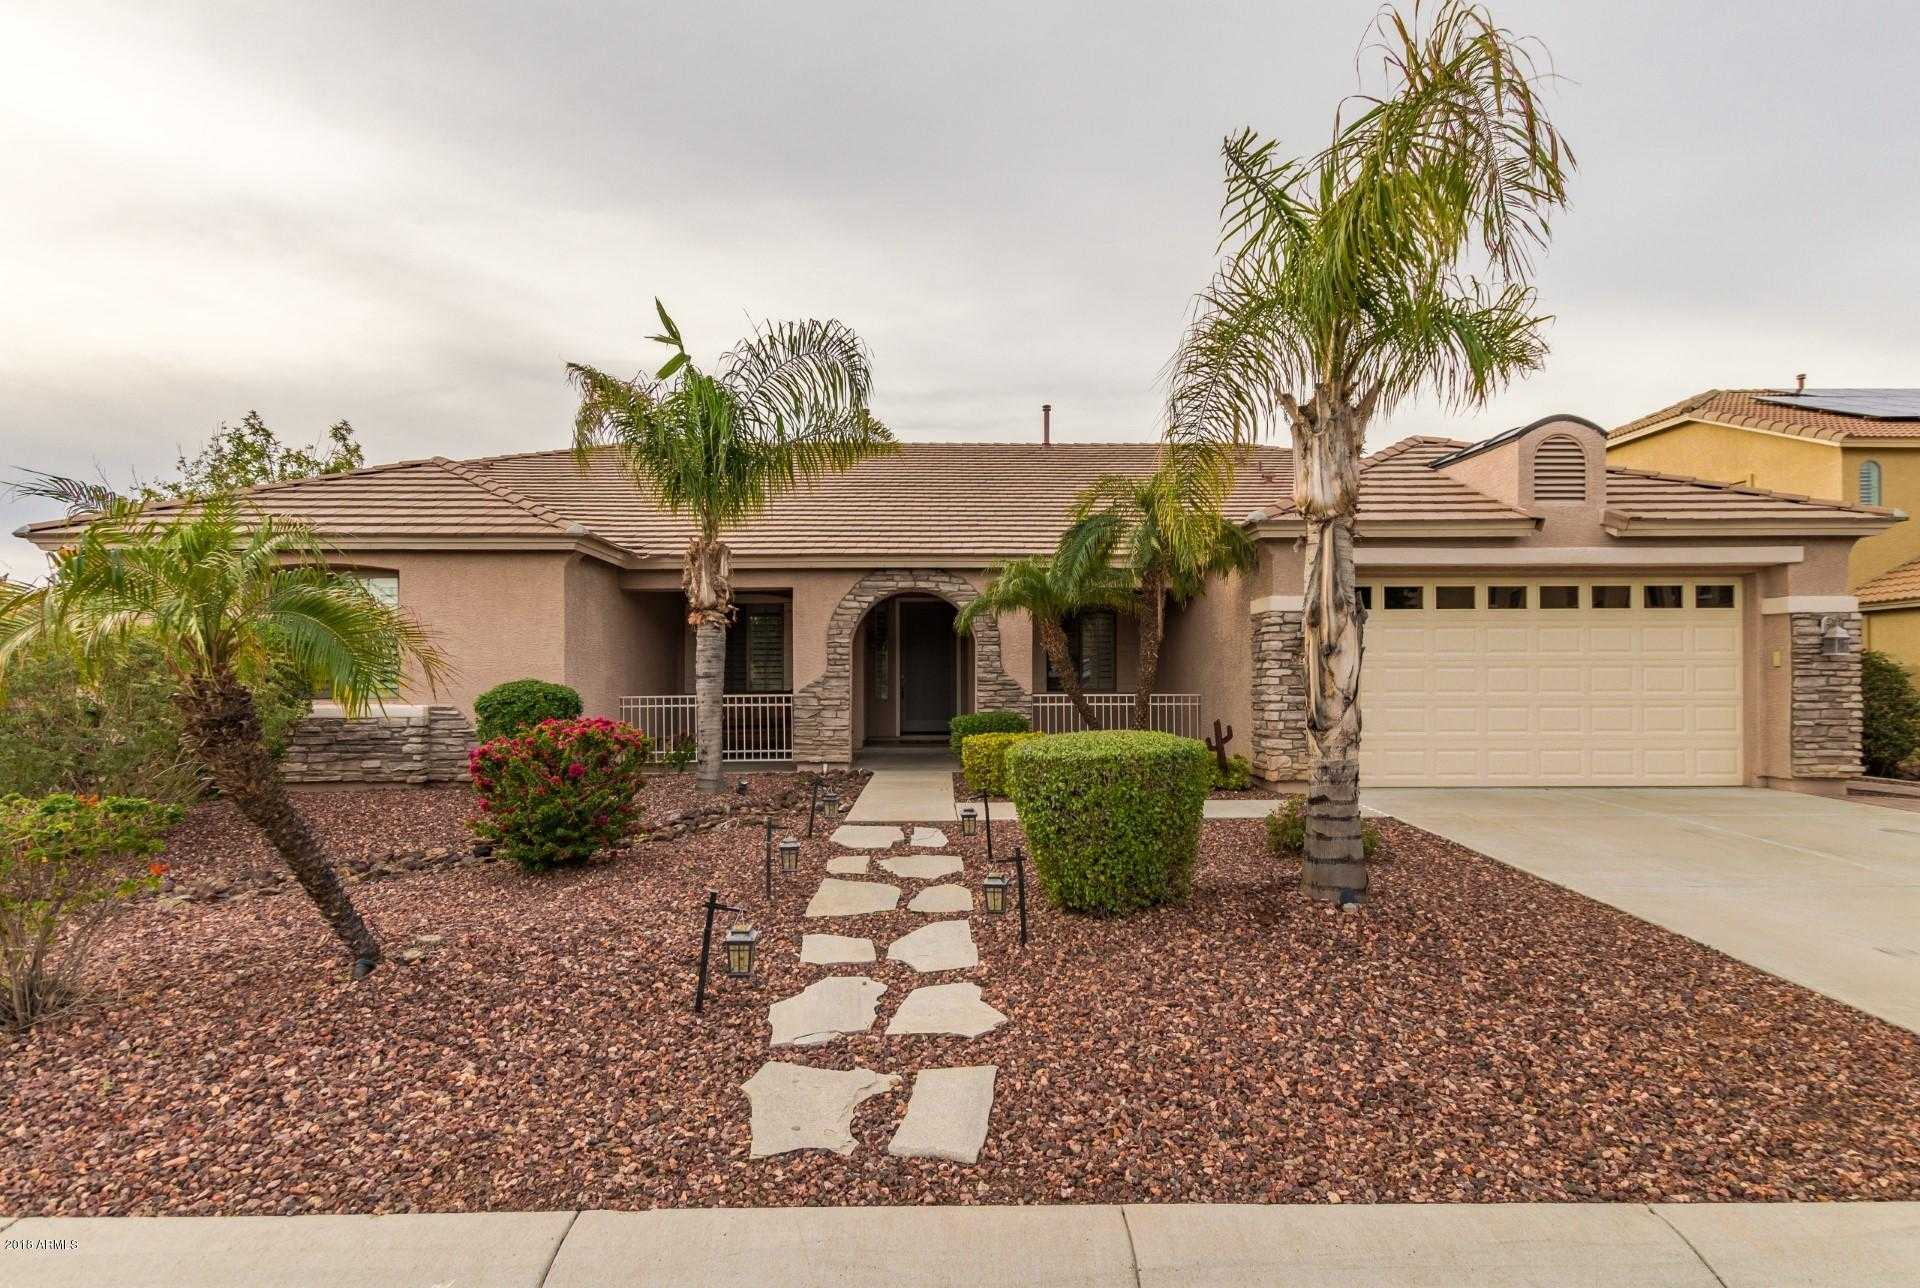 $449,000 - 4Br/3Ba - Home for Sale in Mission Ranch, Glendale